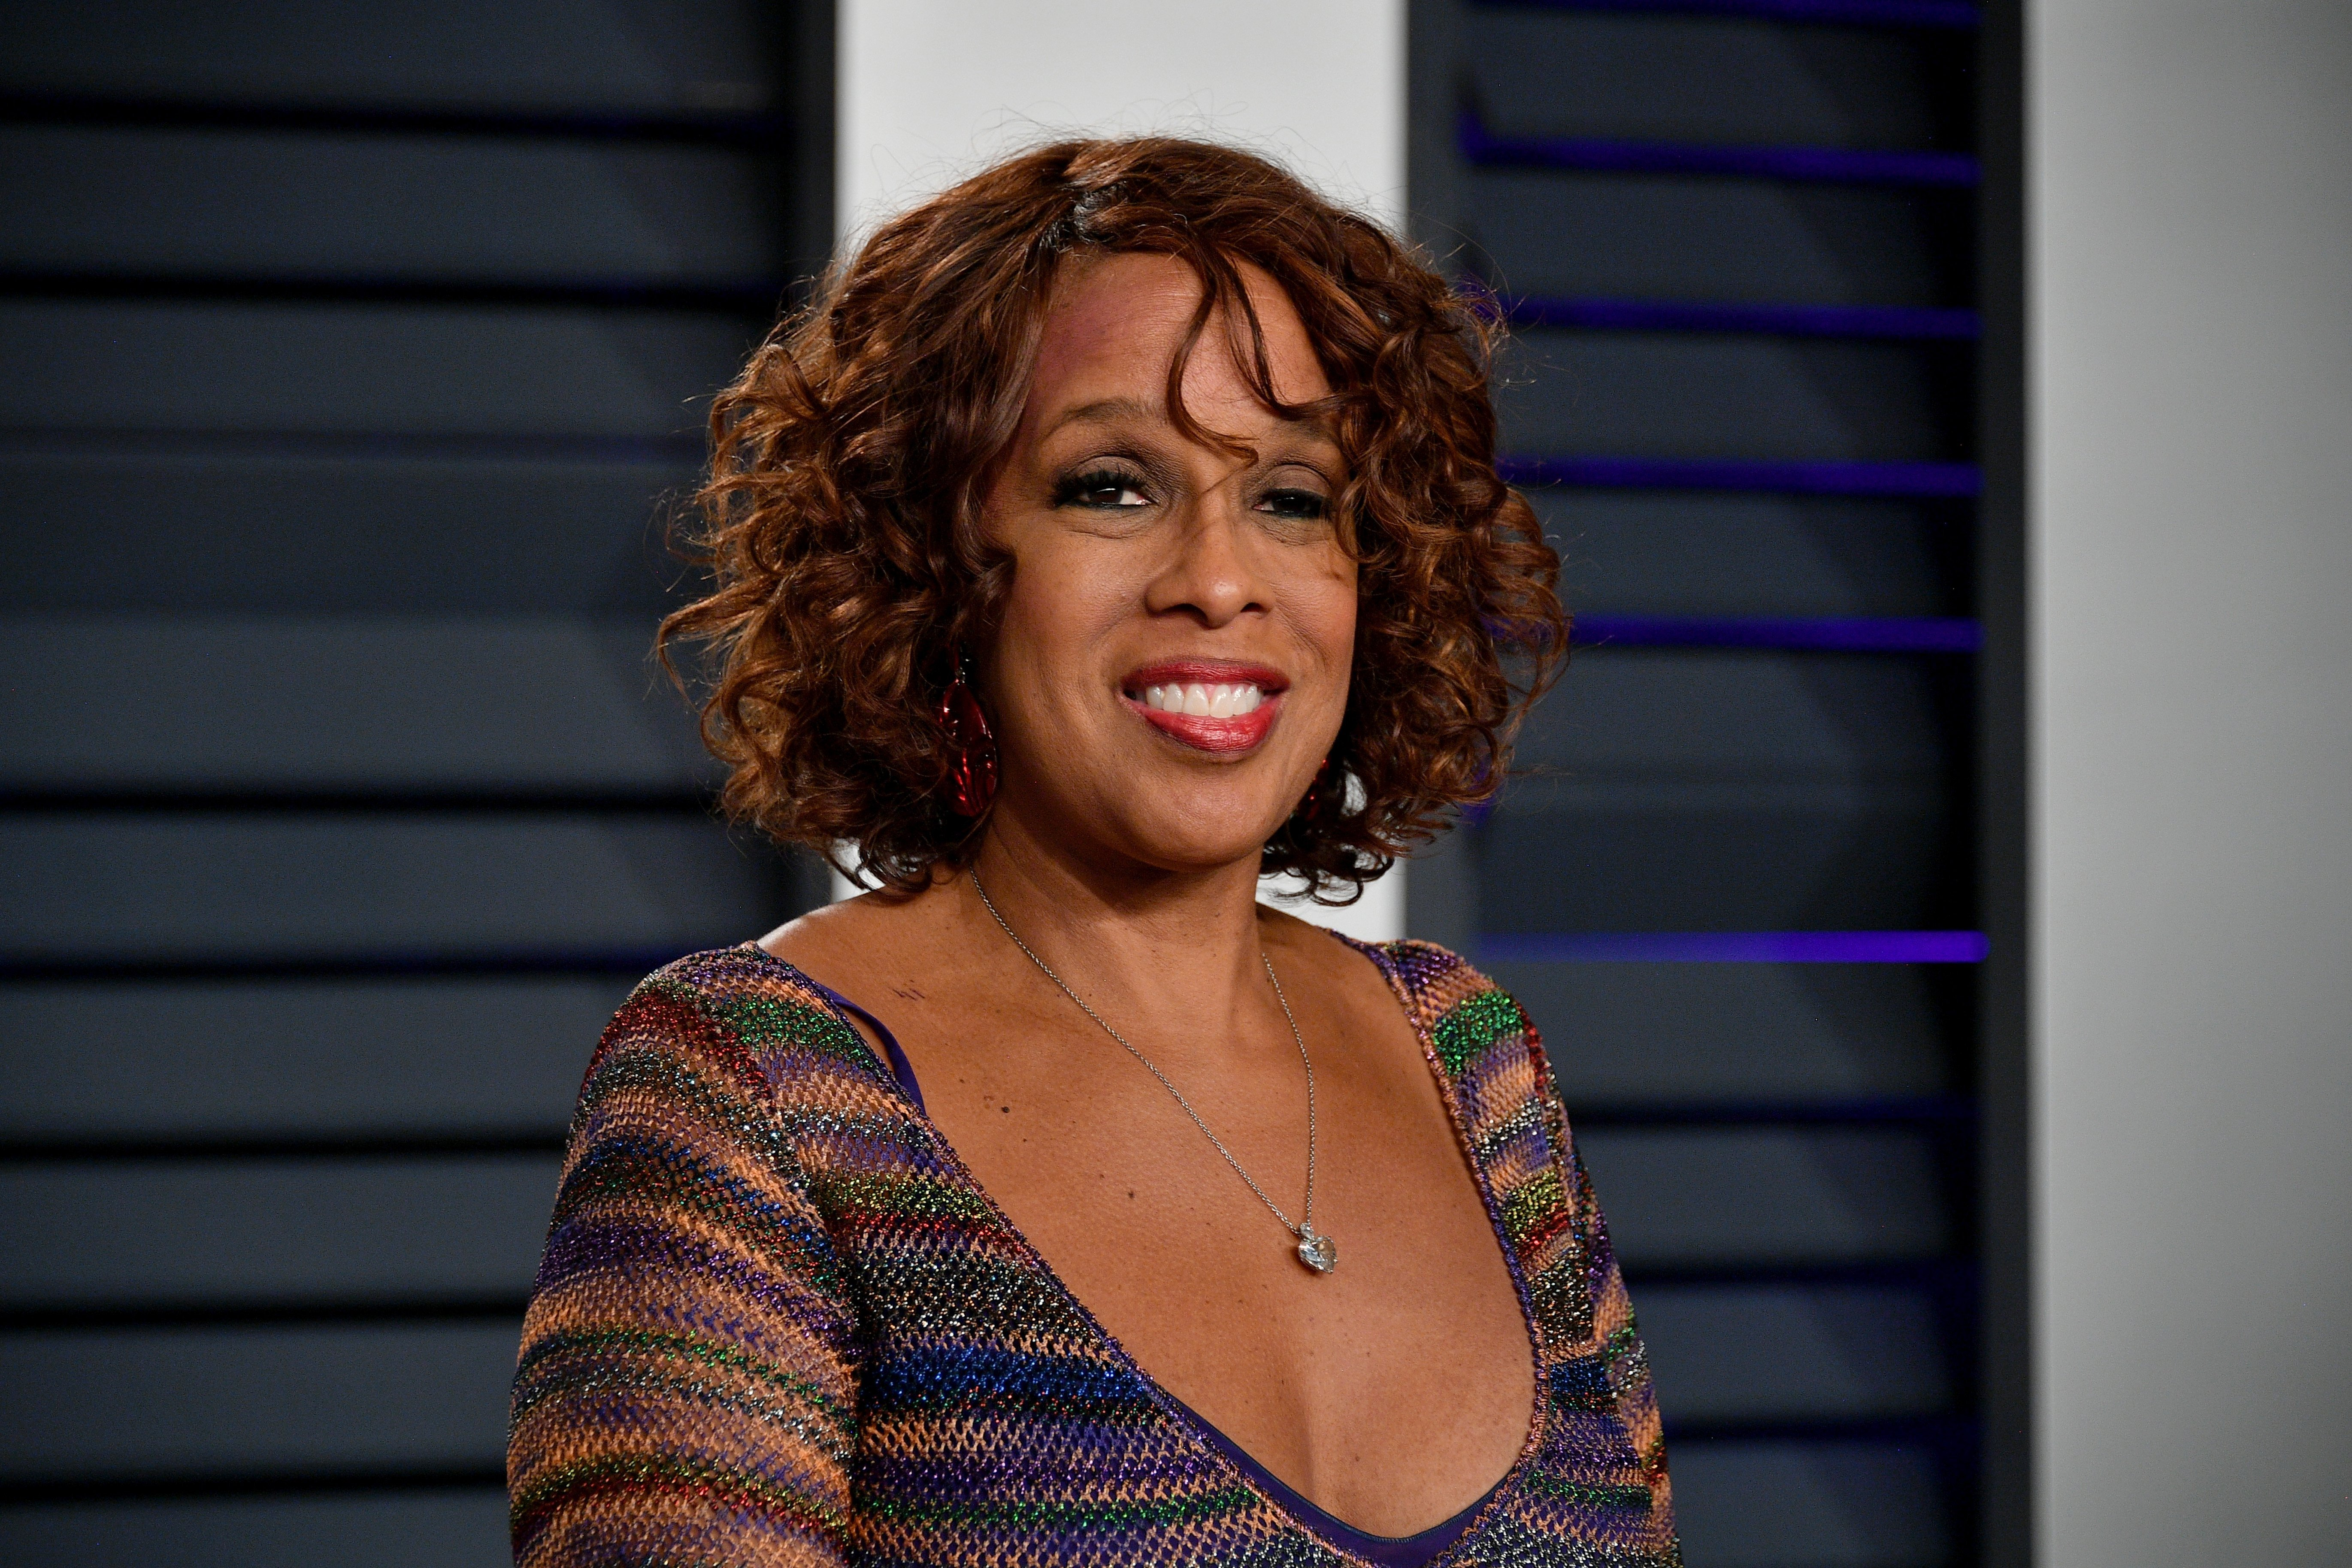 Gayle King at the 2019 Vanity Fair Oscar Party on February 24, 2019 | Photo: Getty Images